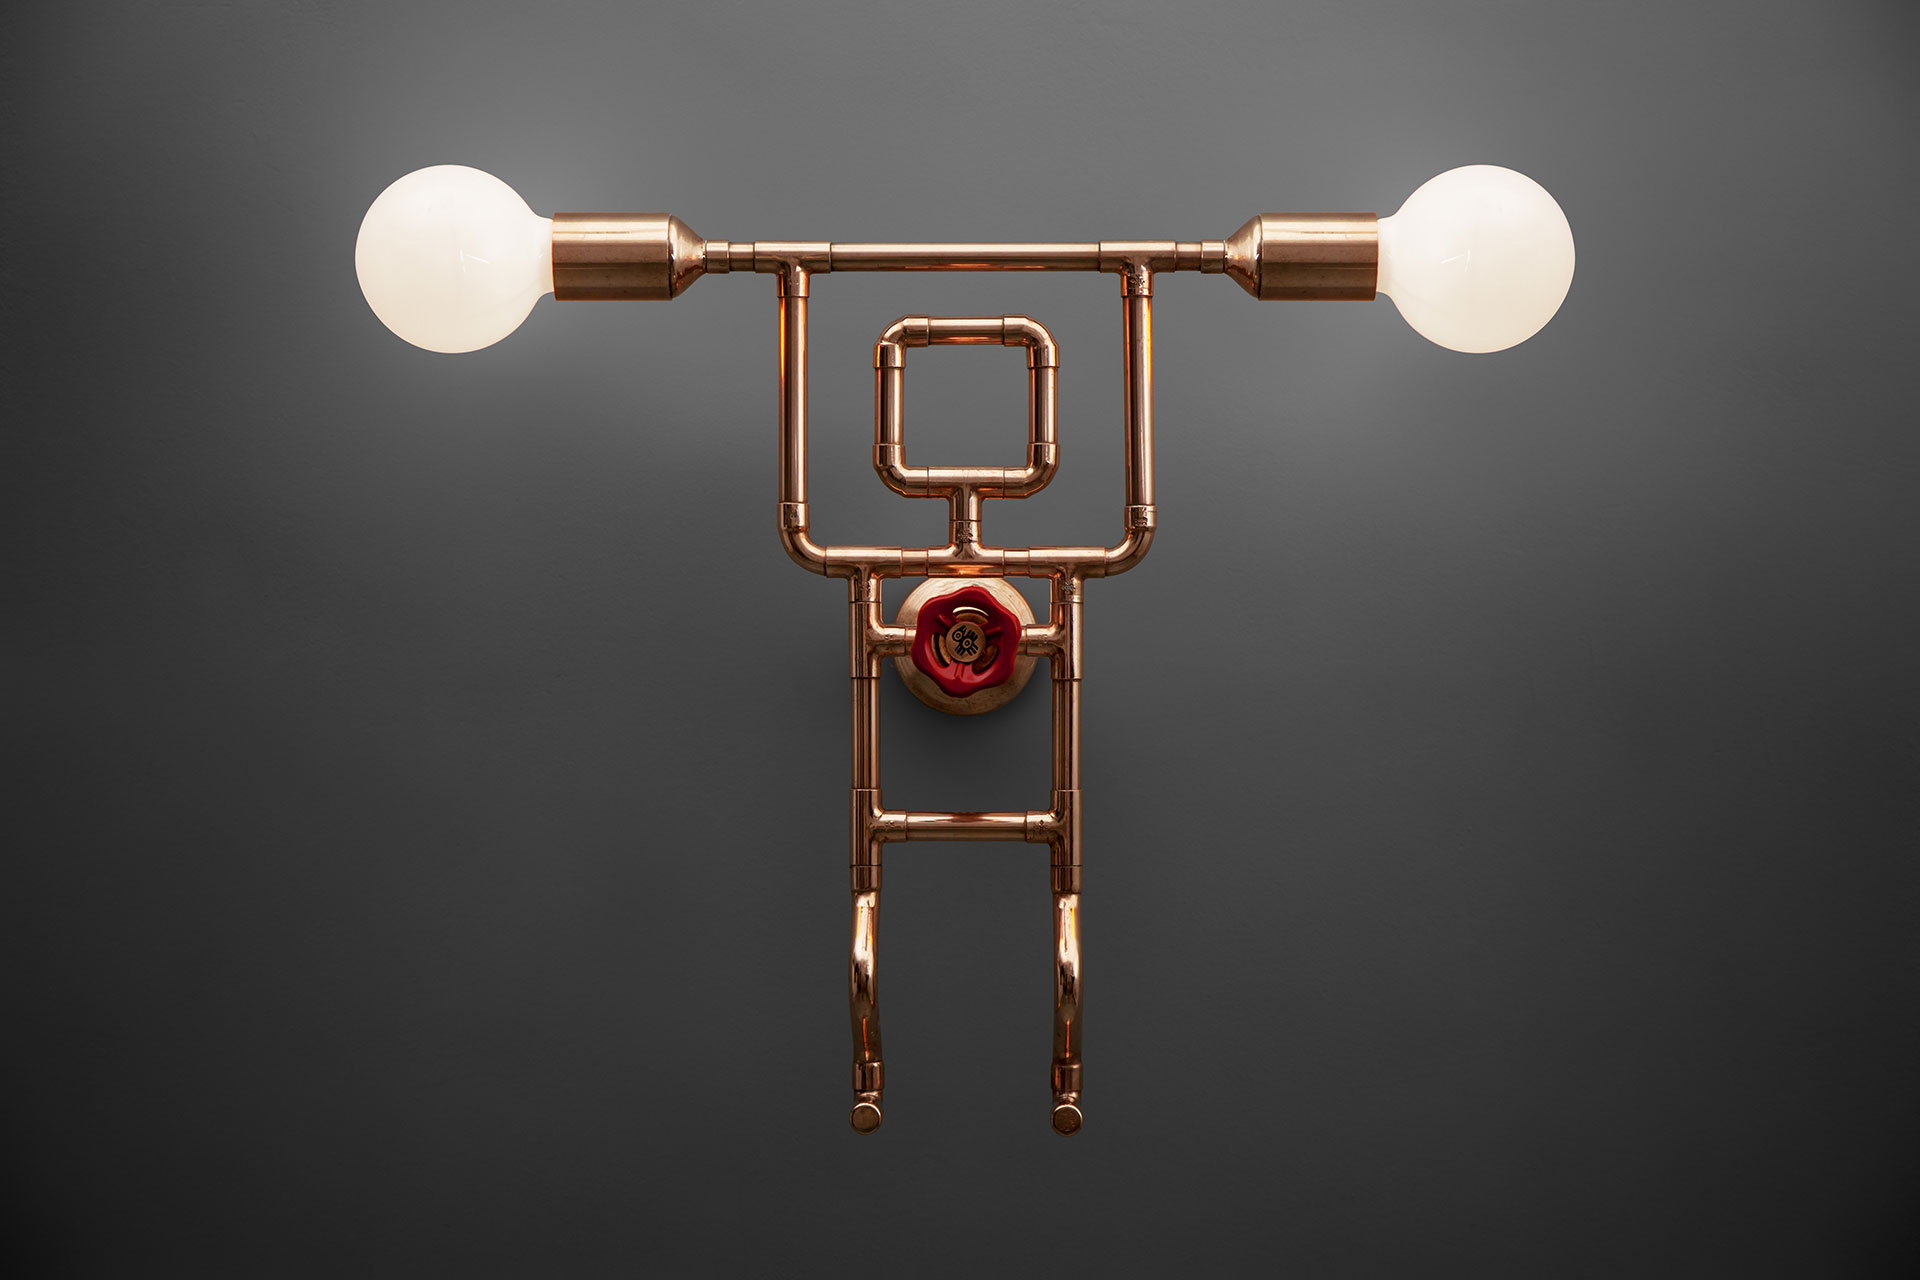 Pipe guy copper sconce with knob dimmer and two lights